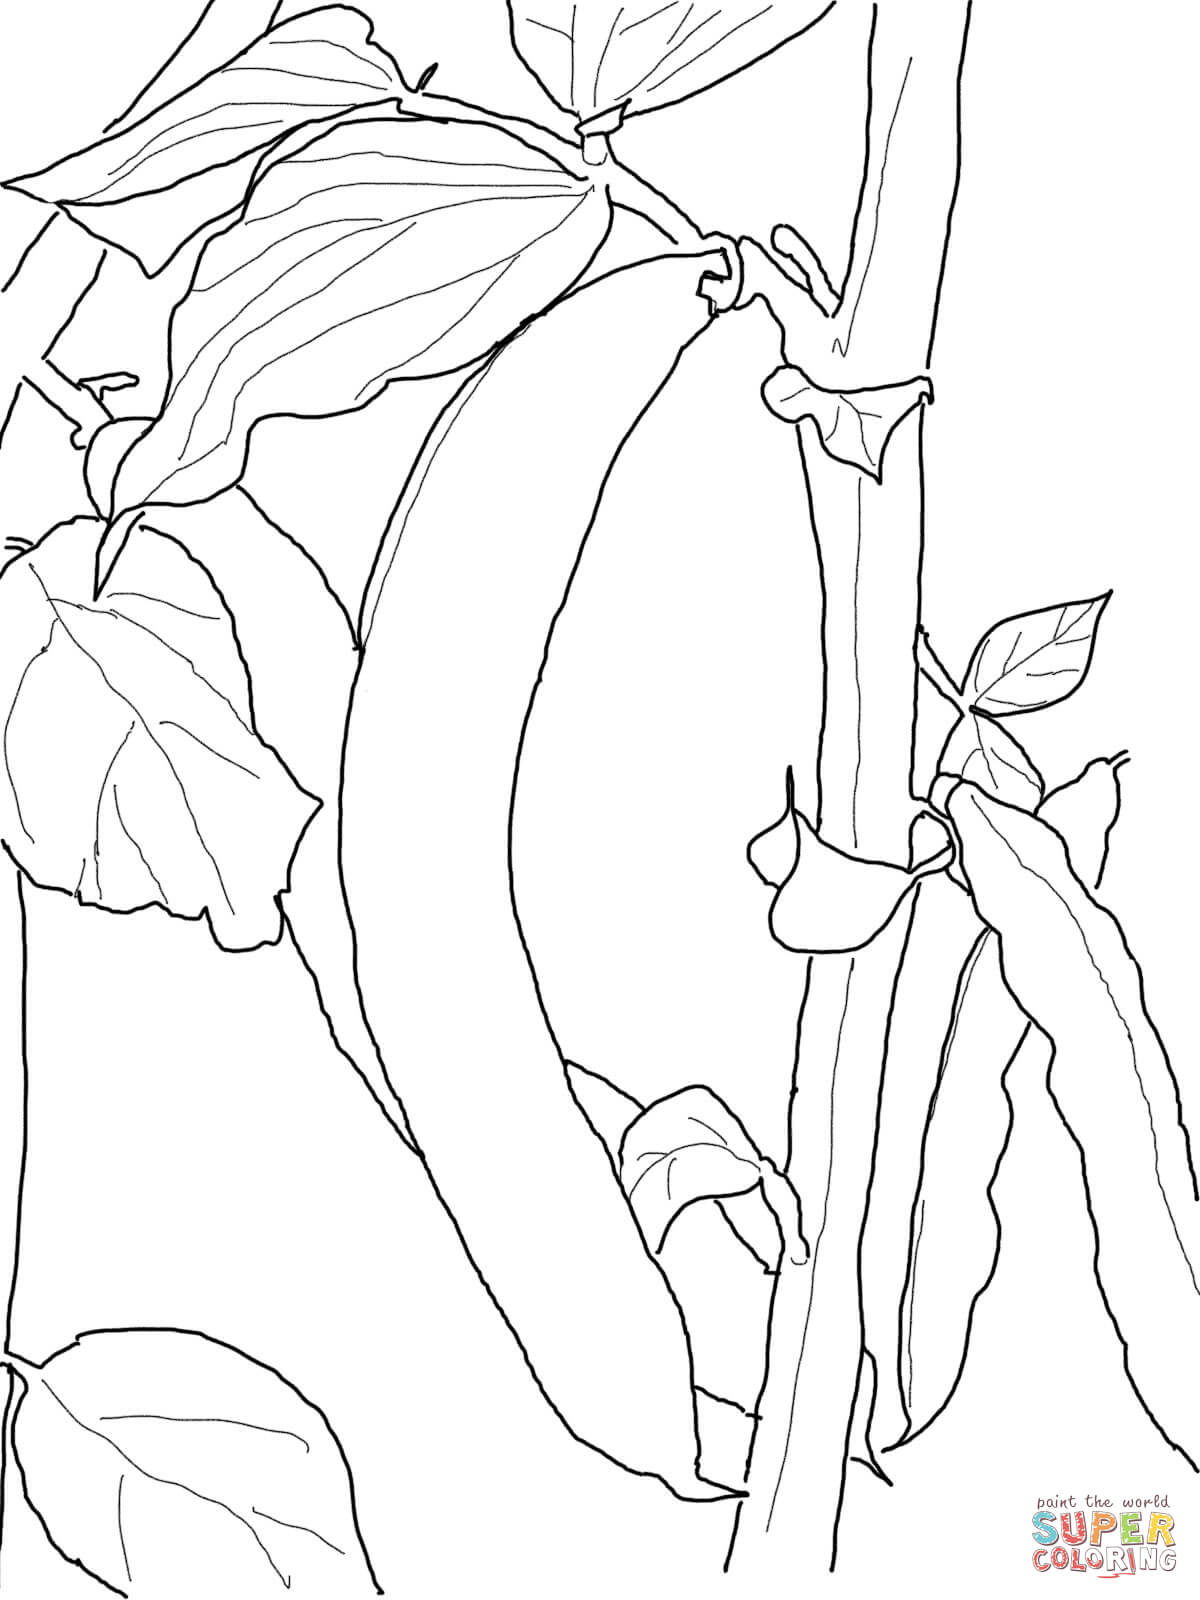 beans coloring pages - photo#15